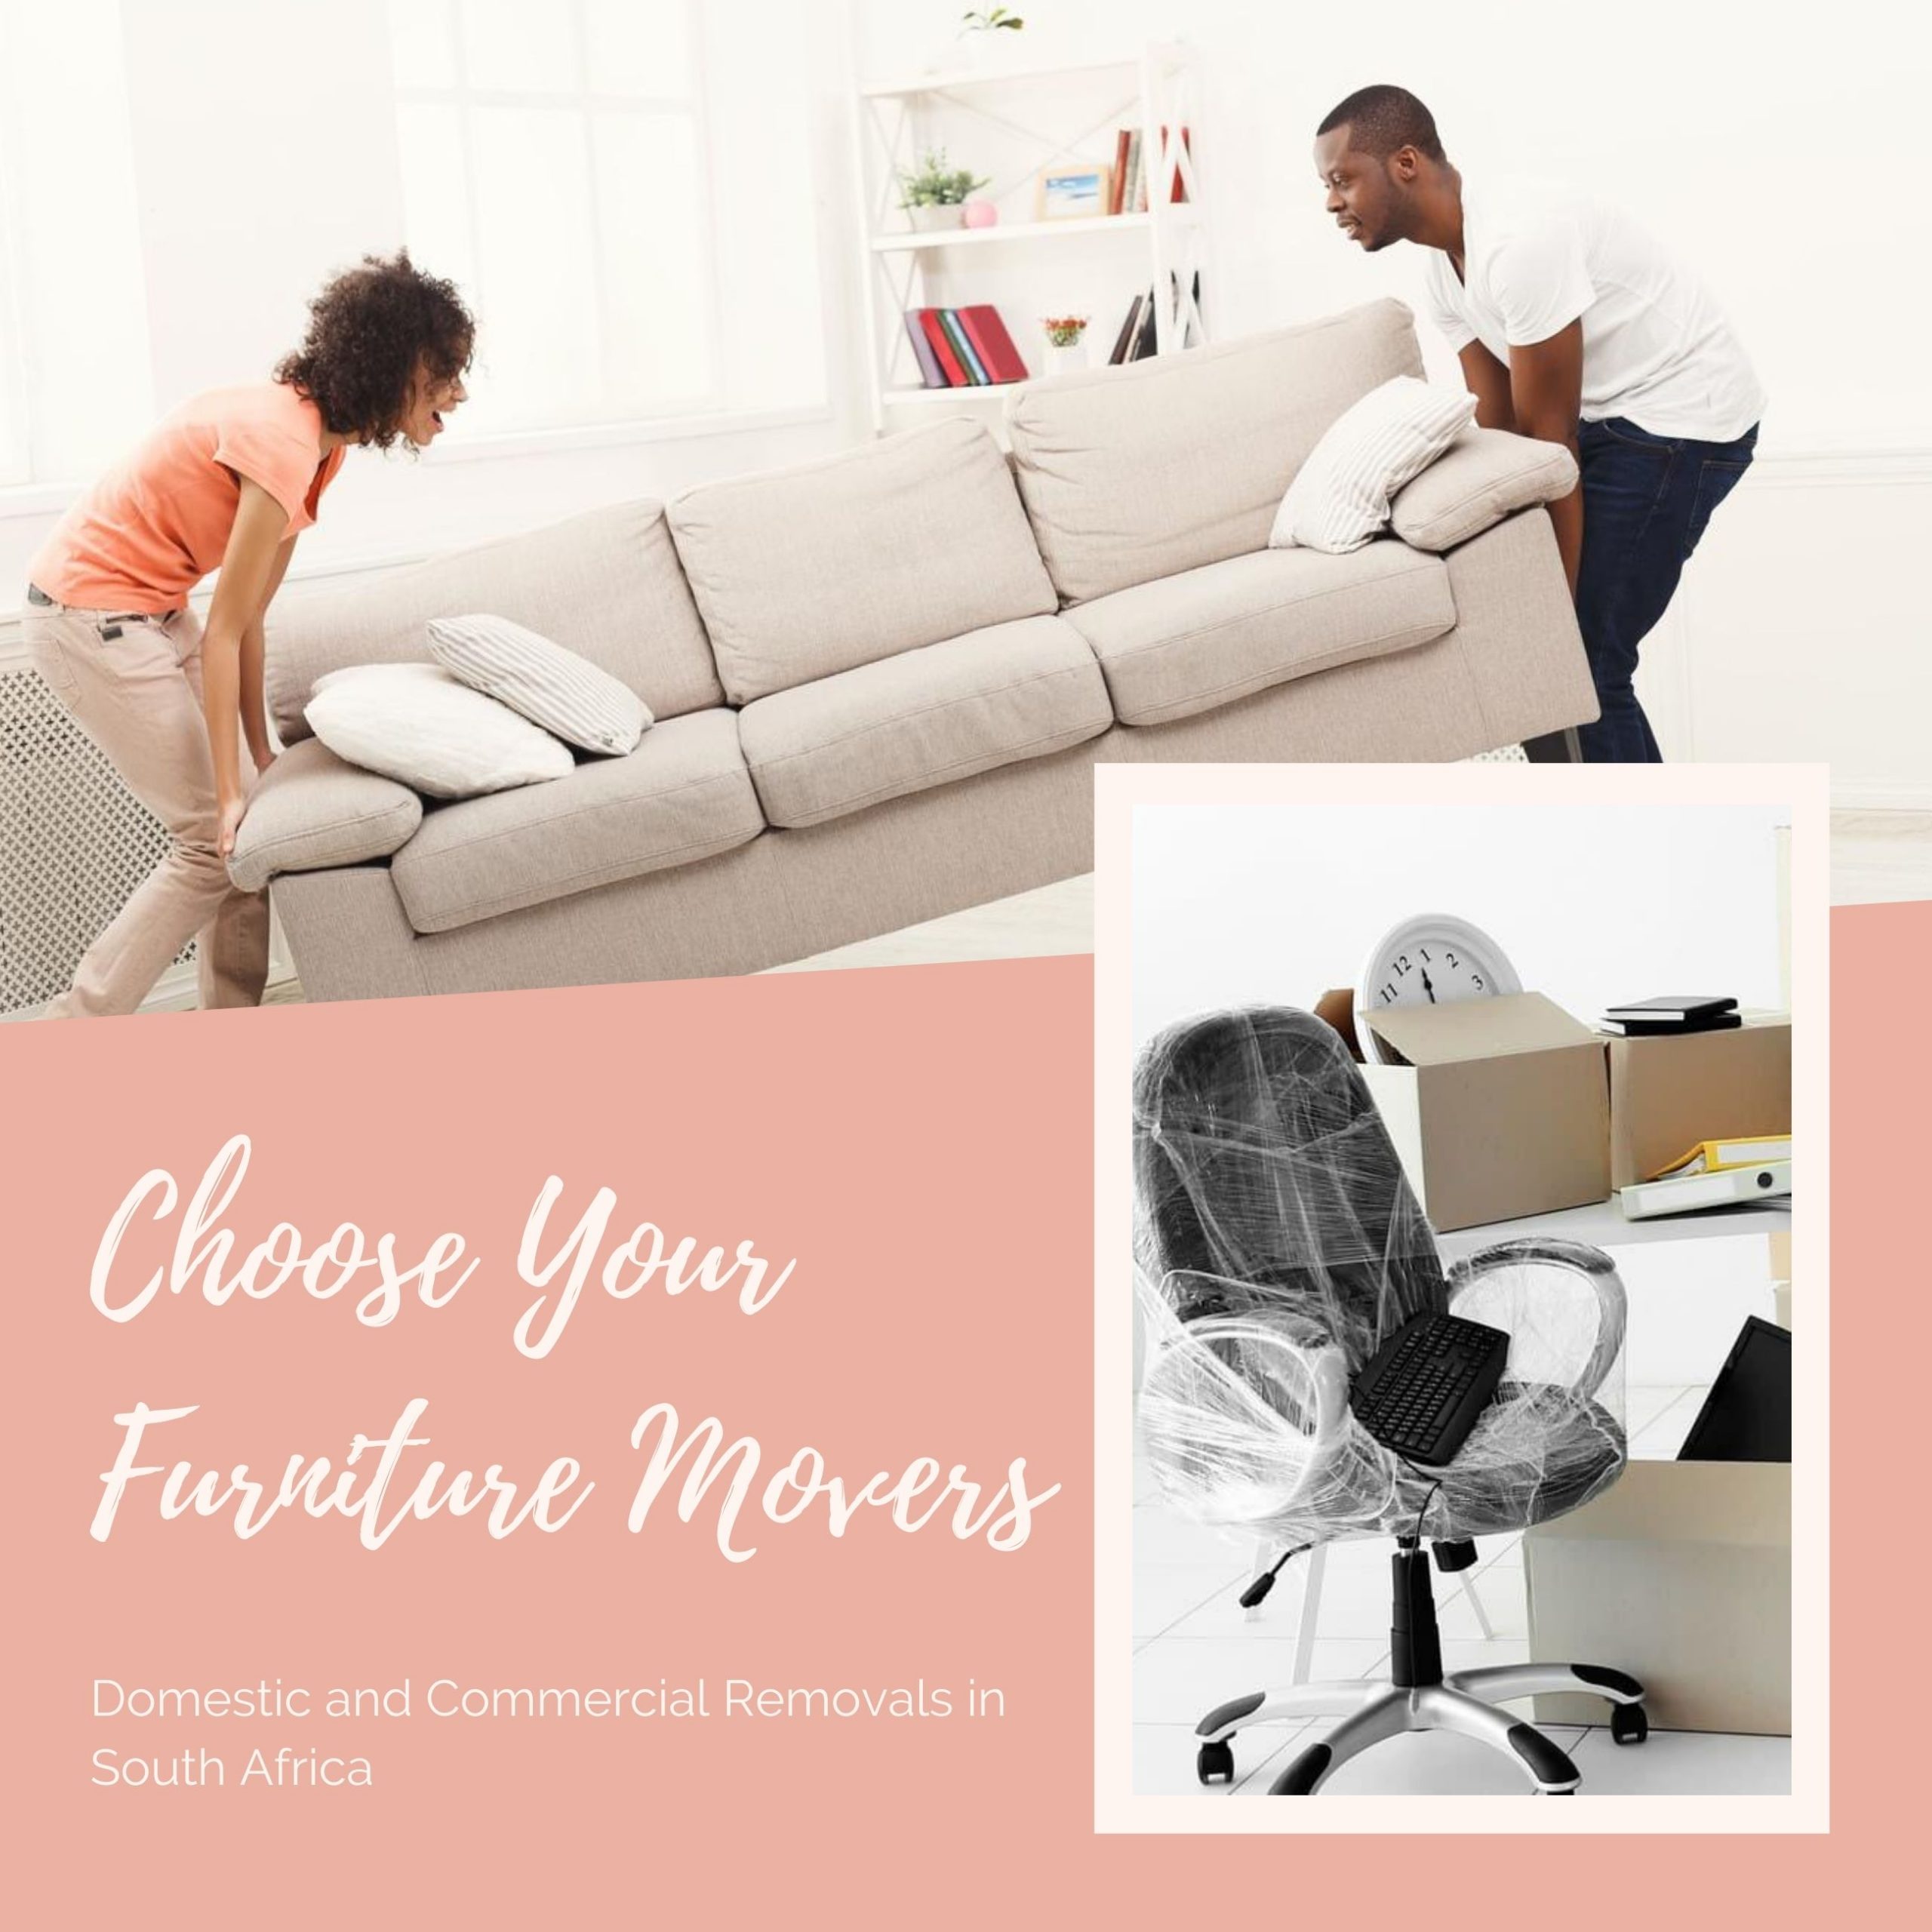 How to Choose Your Furniture Movers?